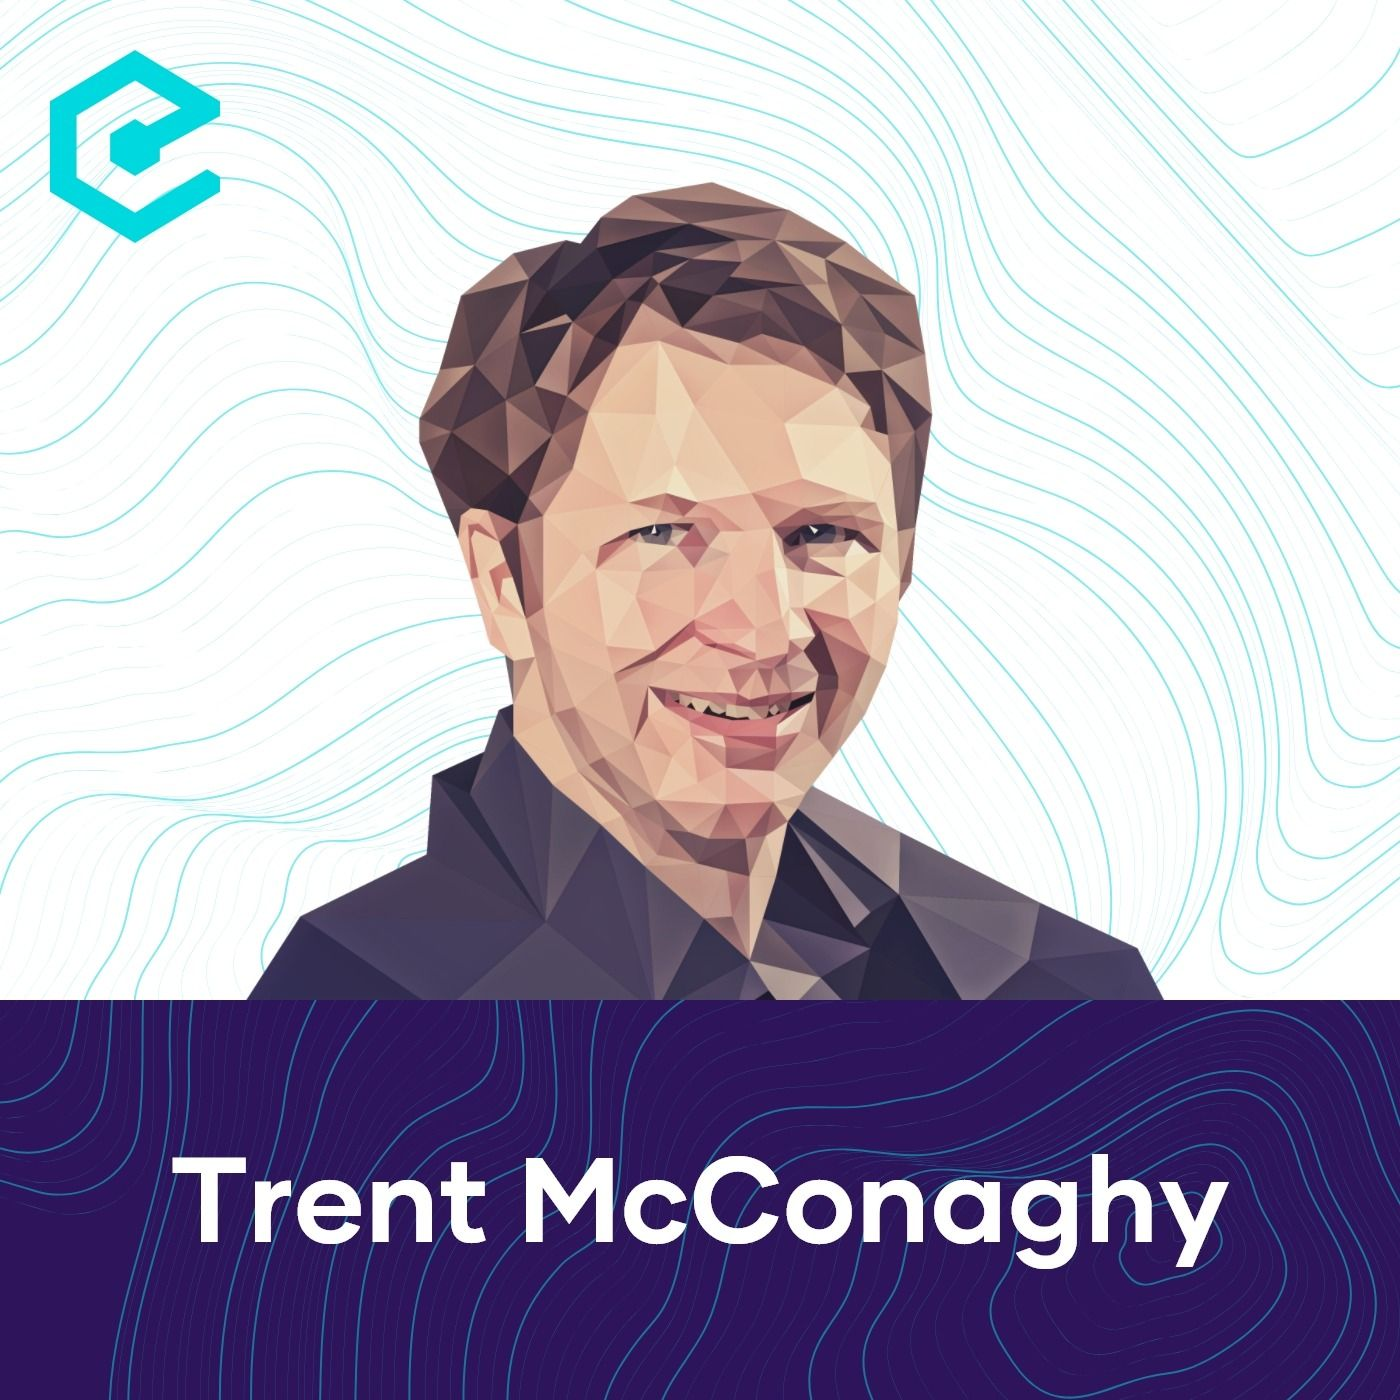 Trent McConaghy: Ocean Protocol – The Platform Making Waves in the Data Industry